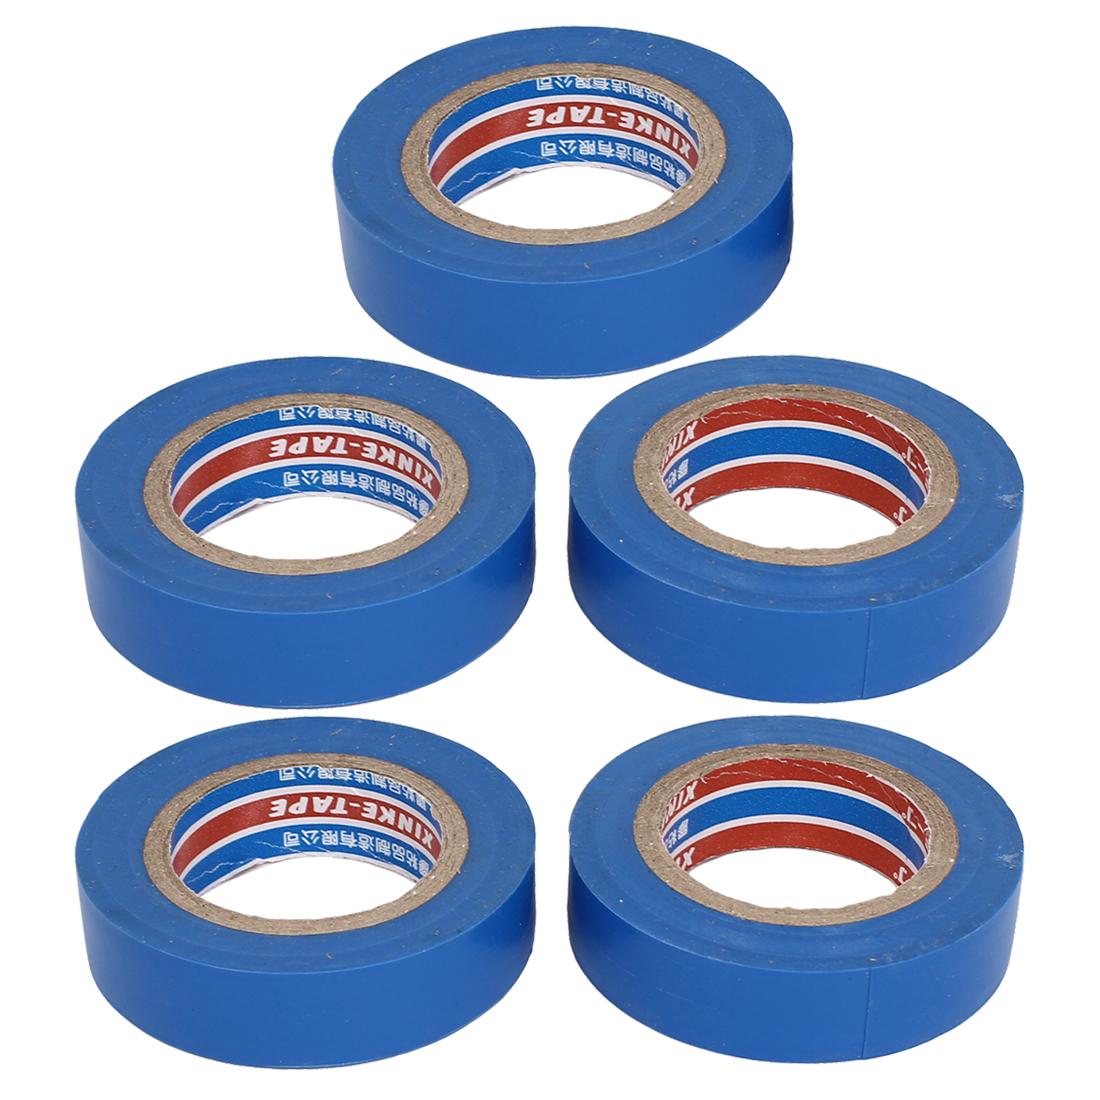 Cable Wire Repair Blue PVC Self-adhesive Electrical Insulation Tape Band 5Pcs